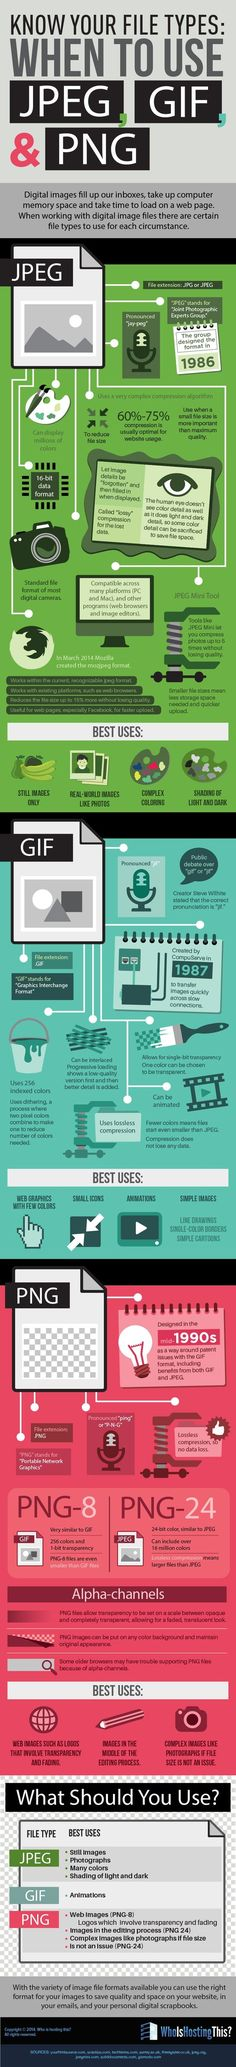 Know Your Digital Image Types: When to Use JPG, GIF And PNG - #infographic #photography #internet